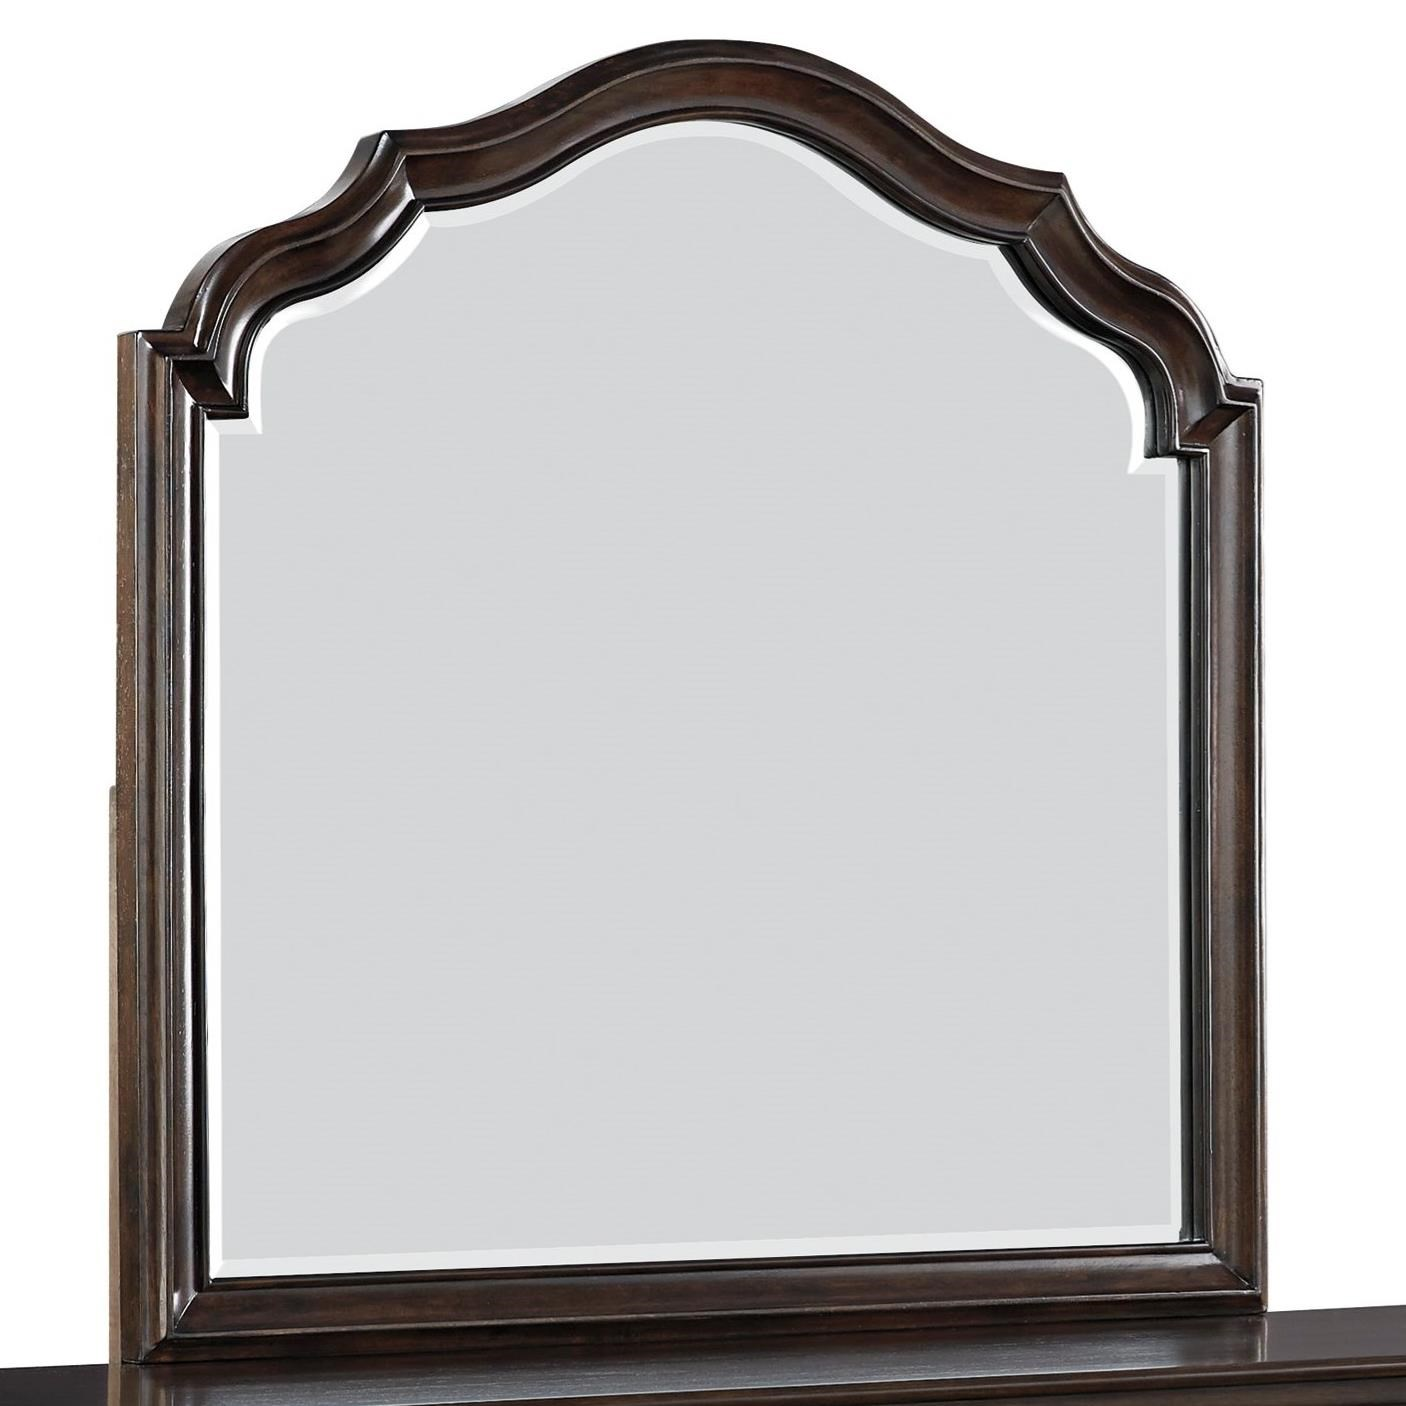 Signature Design by Ashley Moluxy Bedroom Mirror - Item Number: B596-36